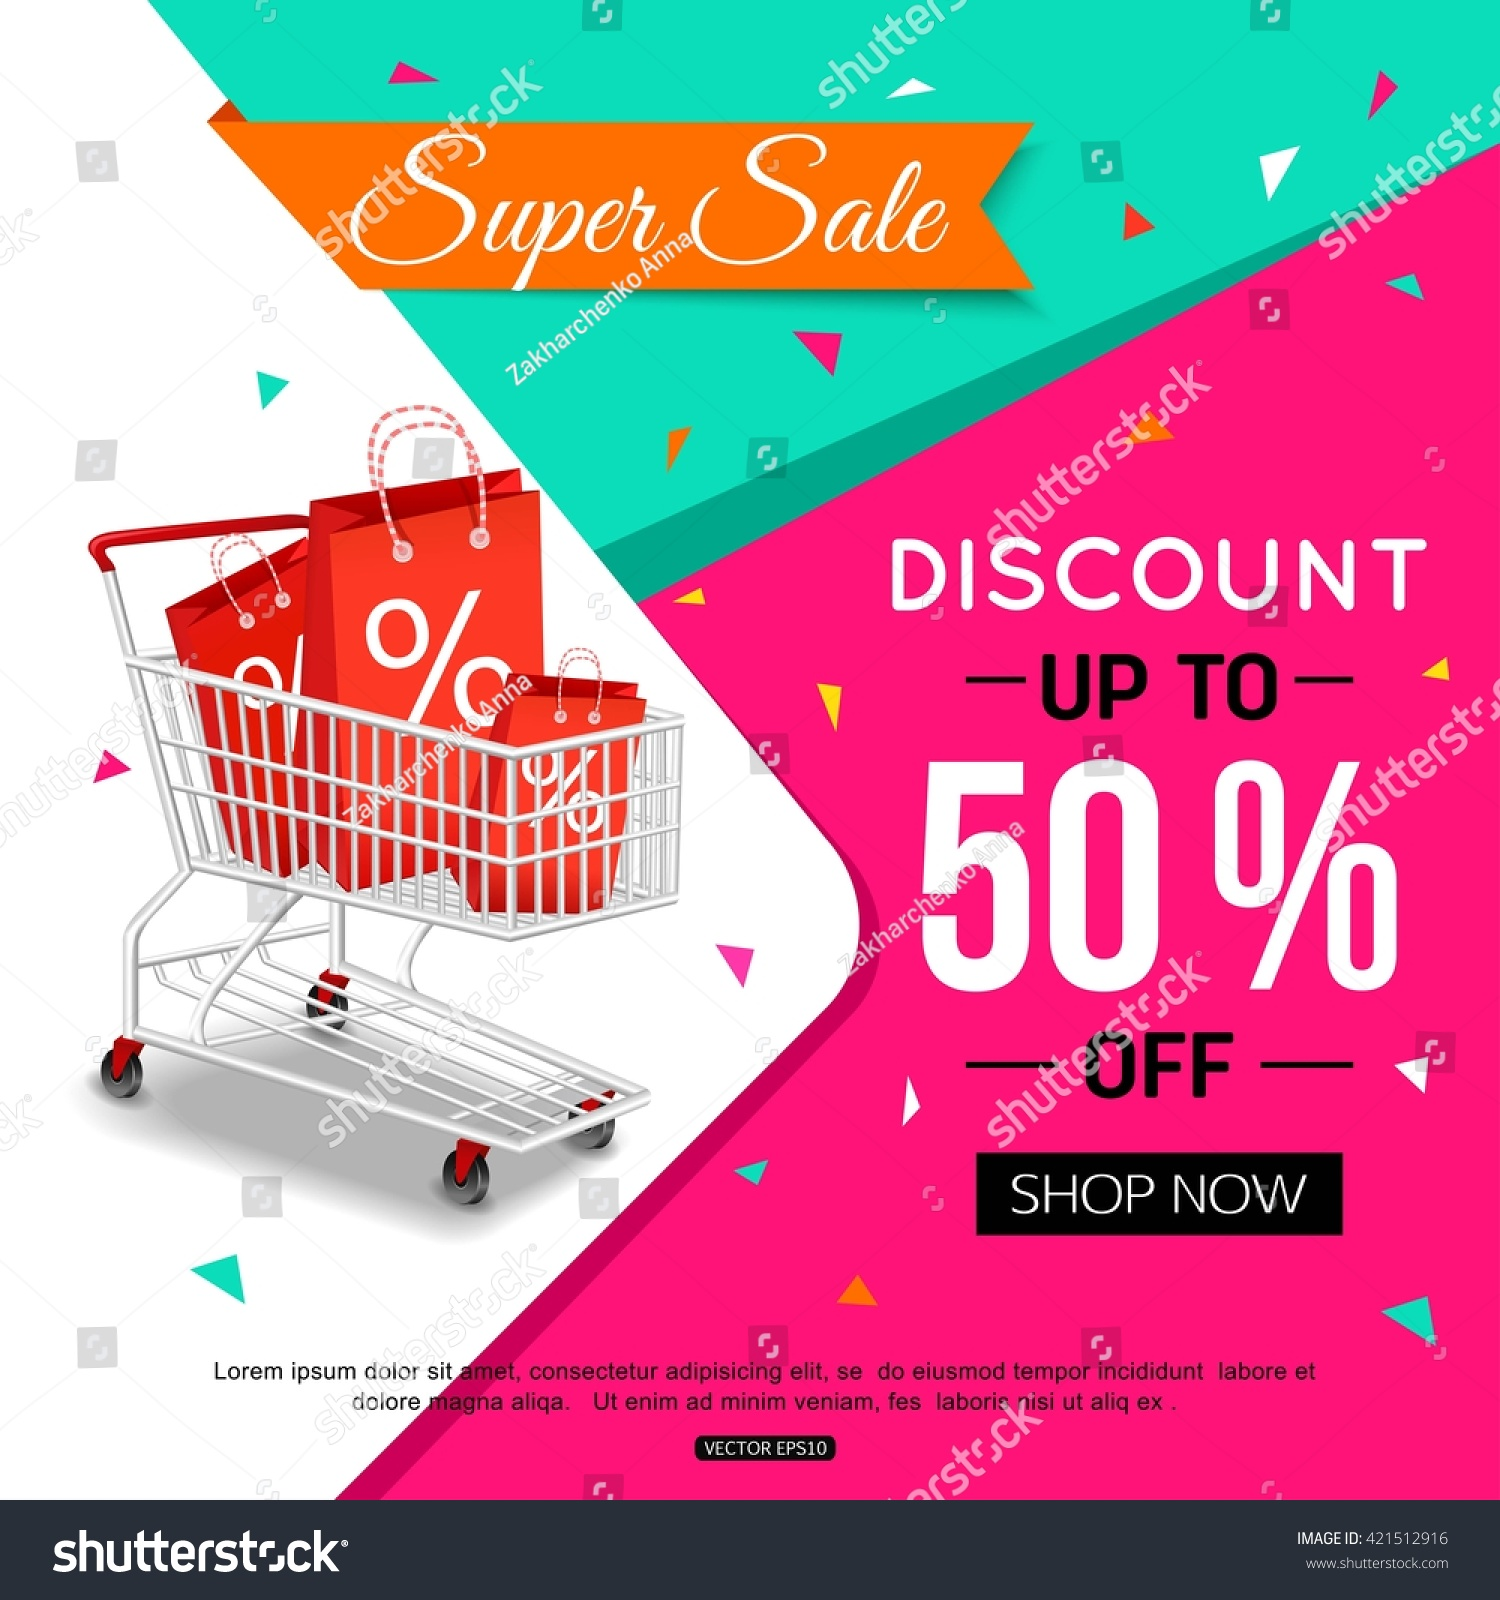 Store Banne Ultima Super Sale Banner Design Shop Online Stock Vector